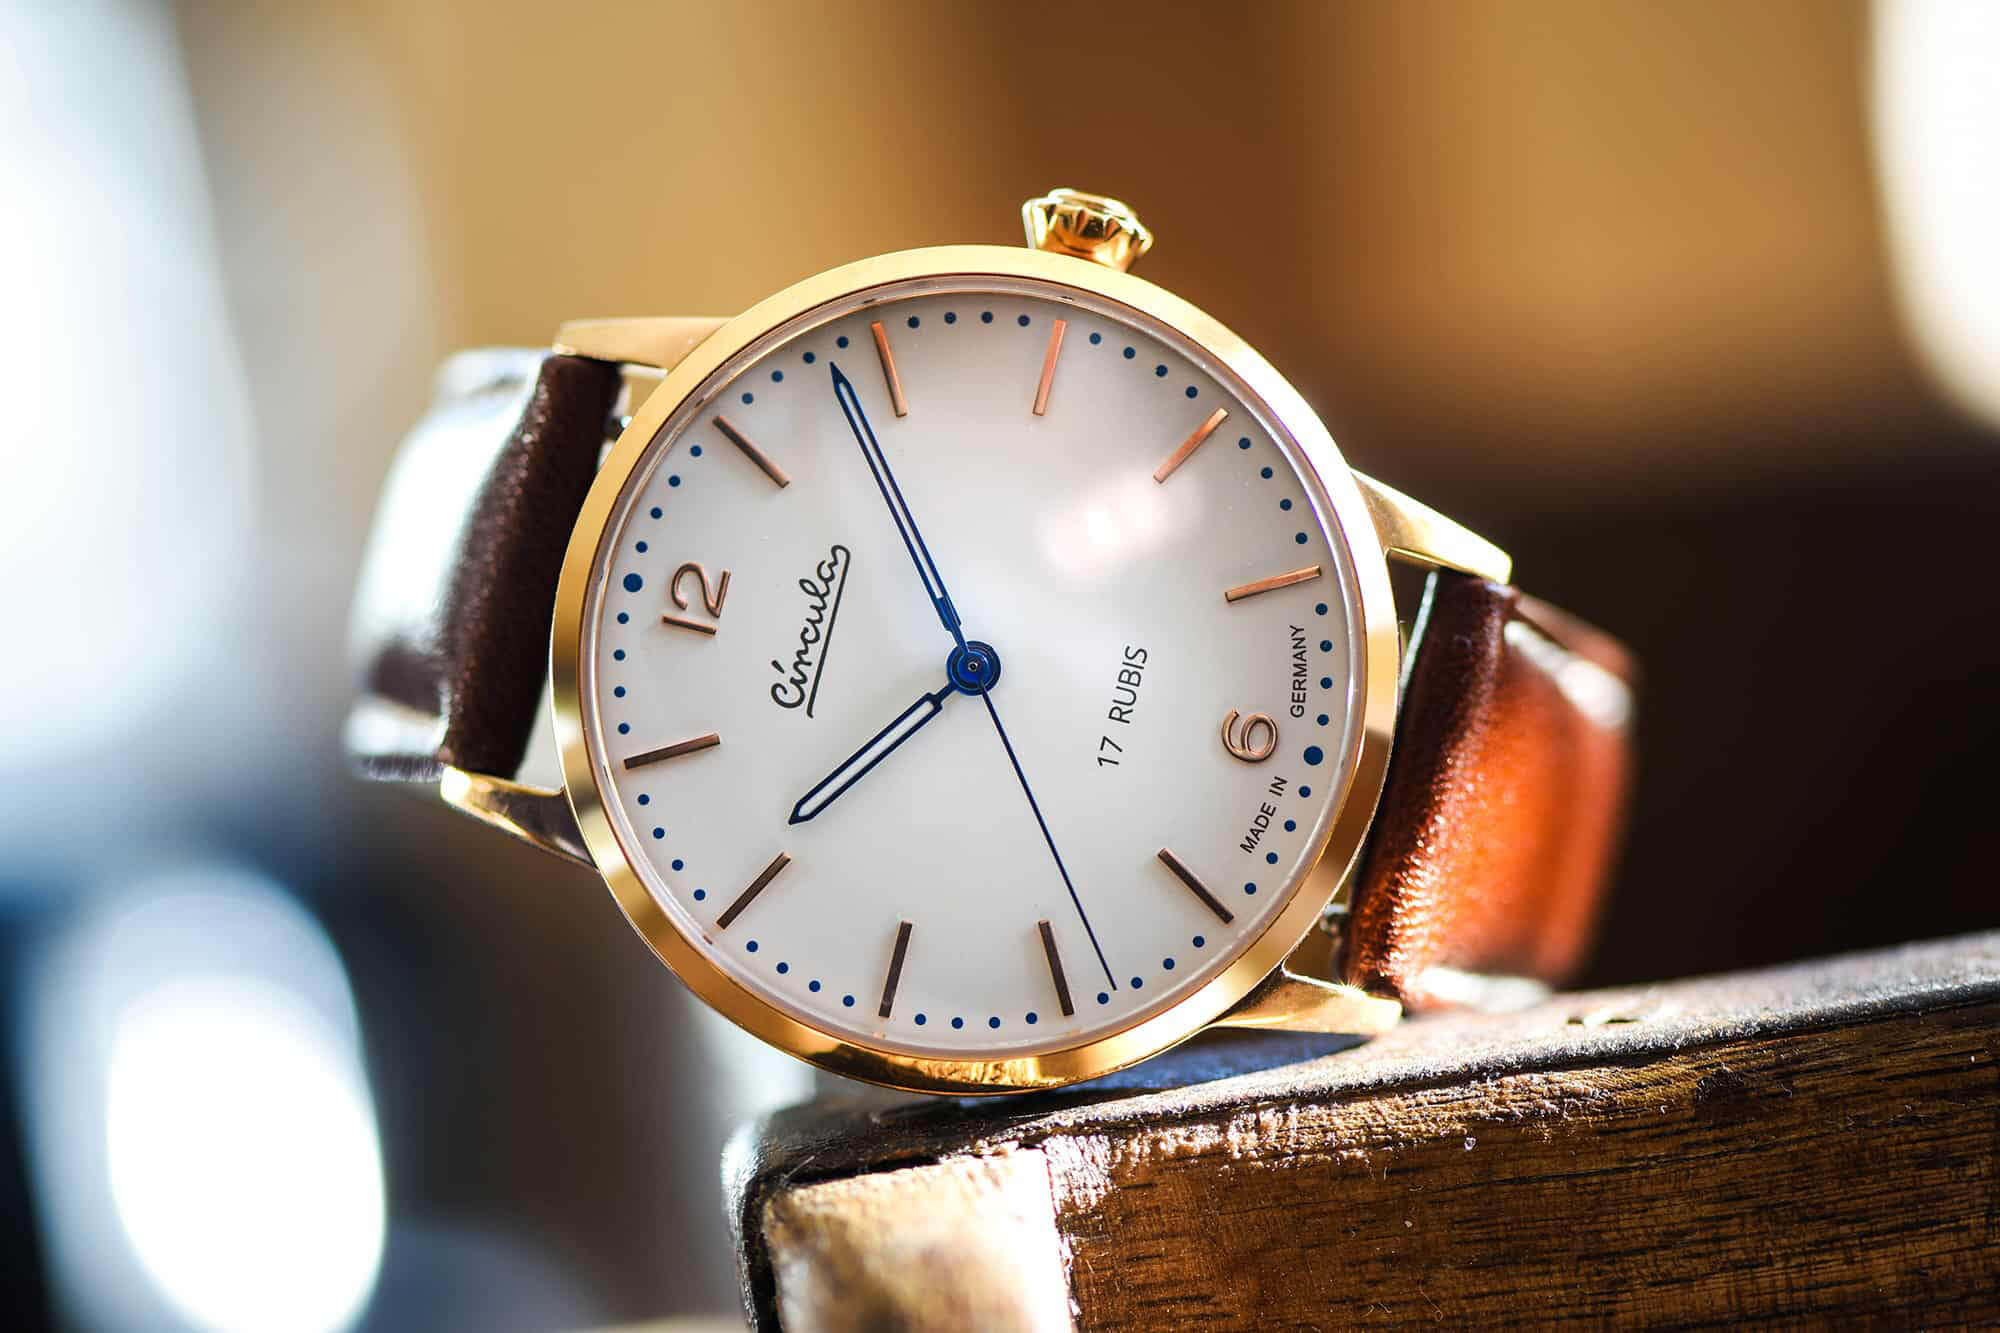 Circula Heritage Hand-Wound Watch